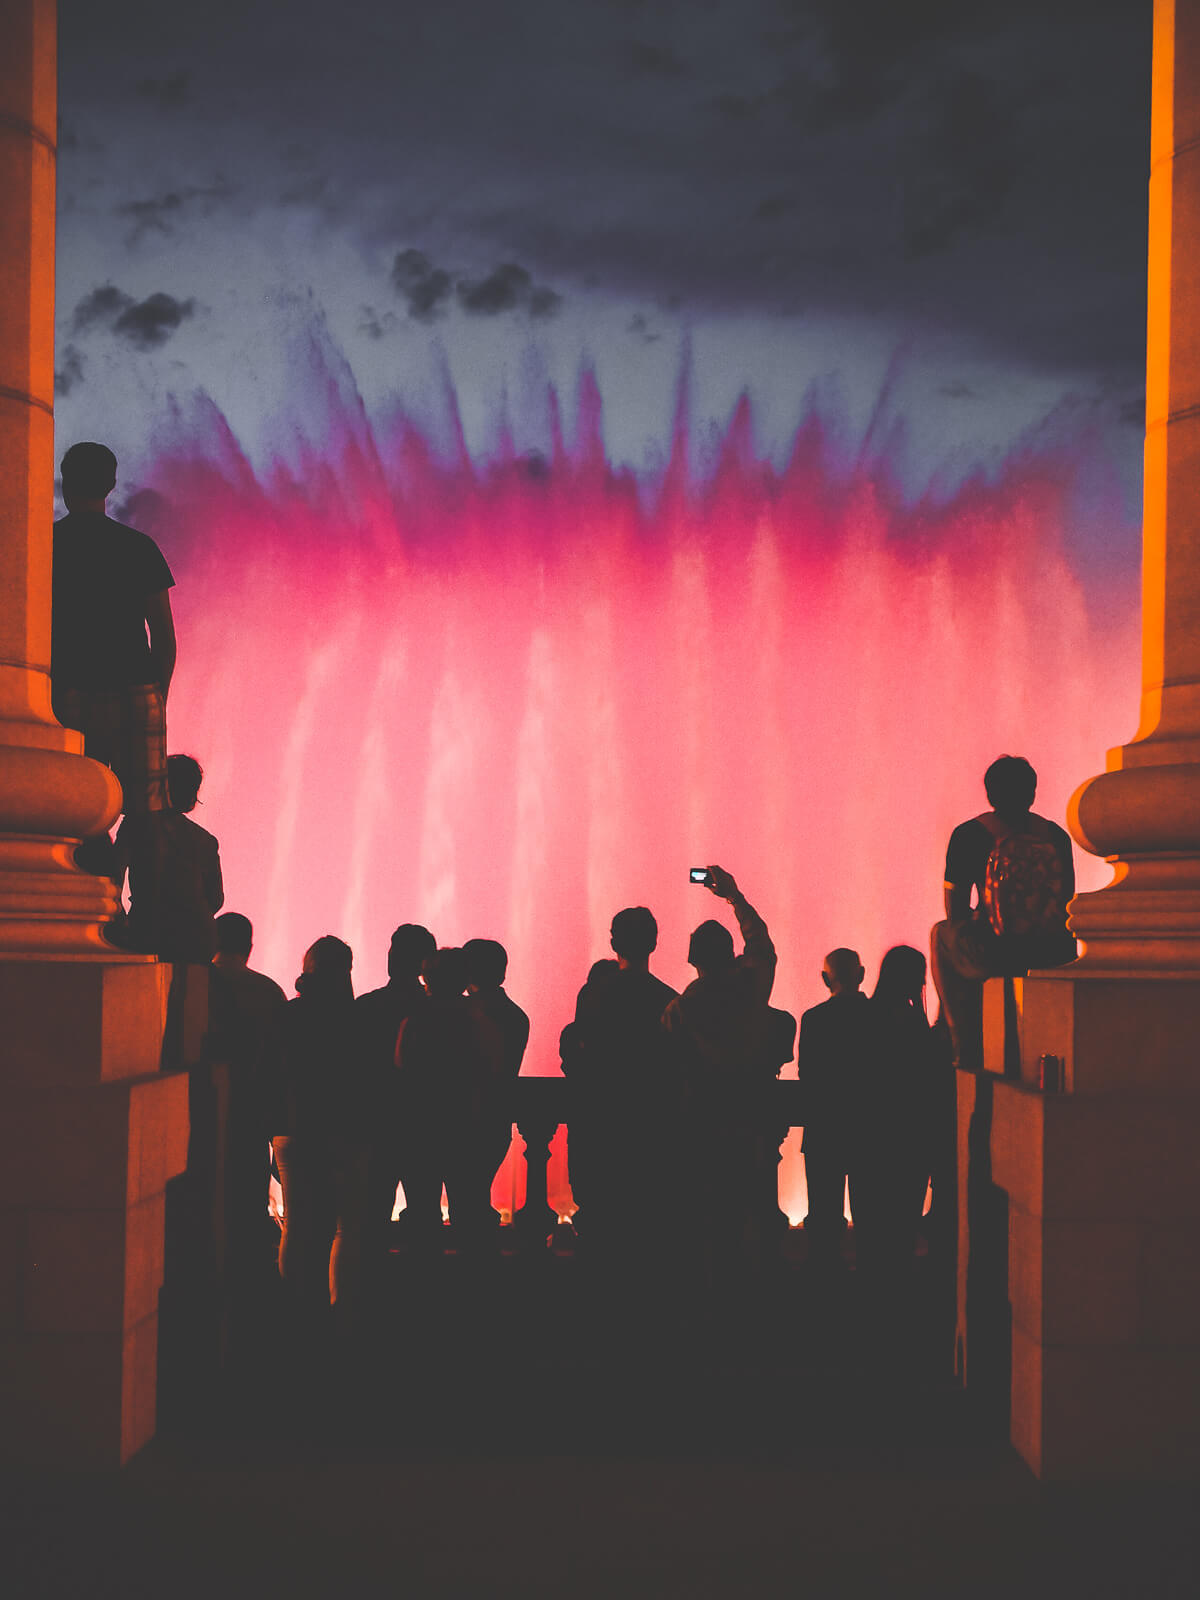 Barcelona Street Photography, Montjuic fountain, red water, speople ilhouette spectating